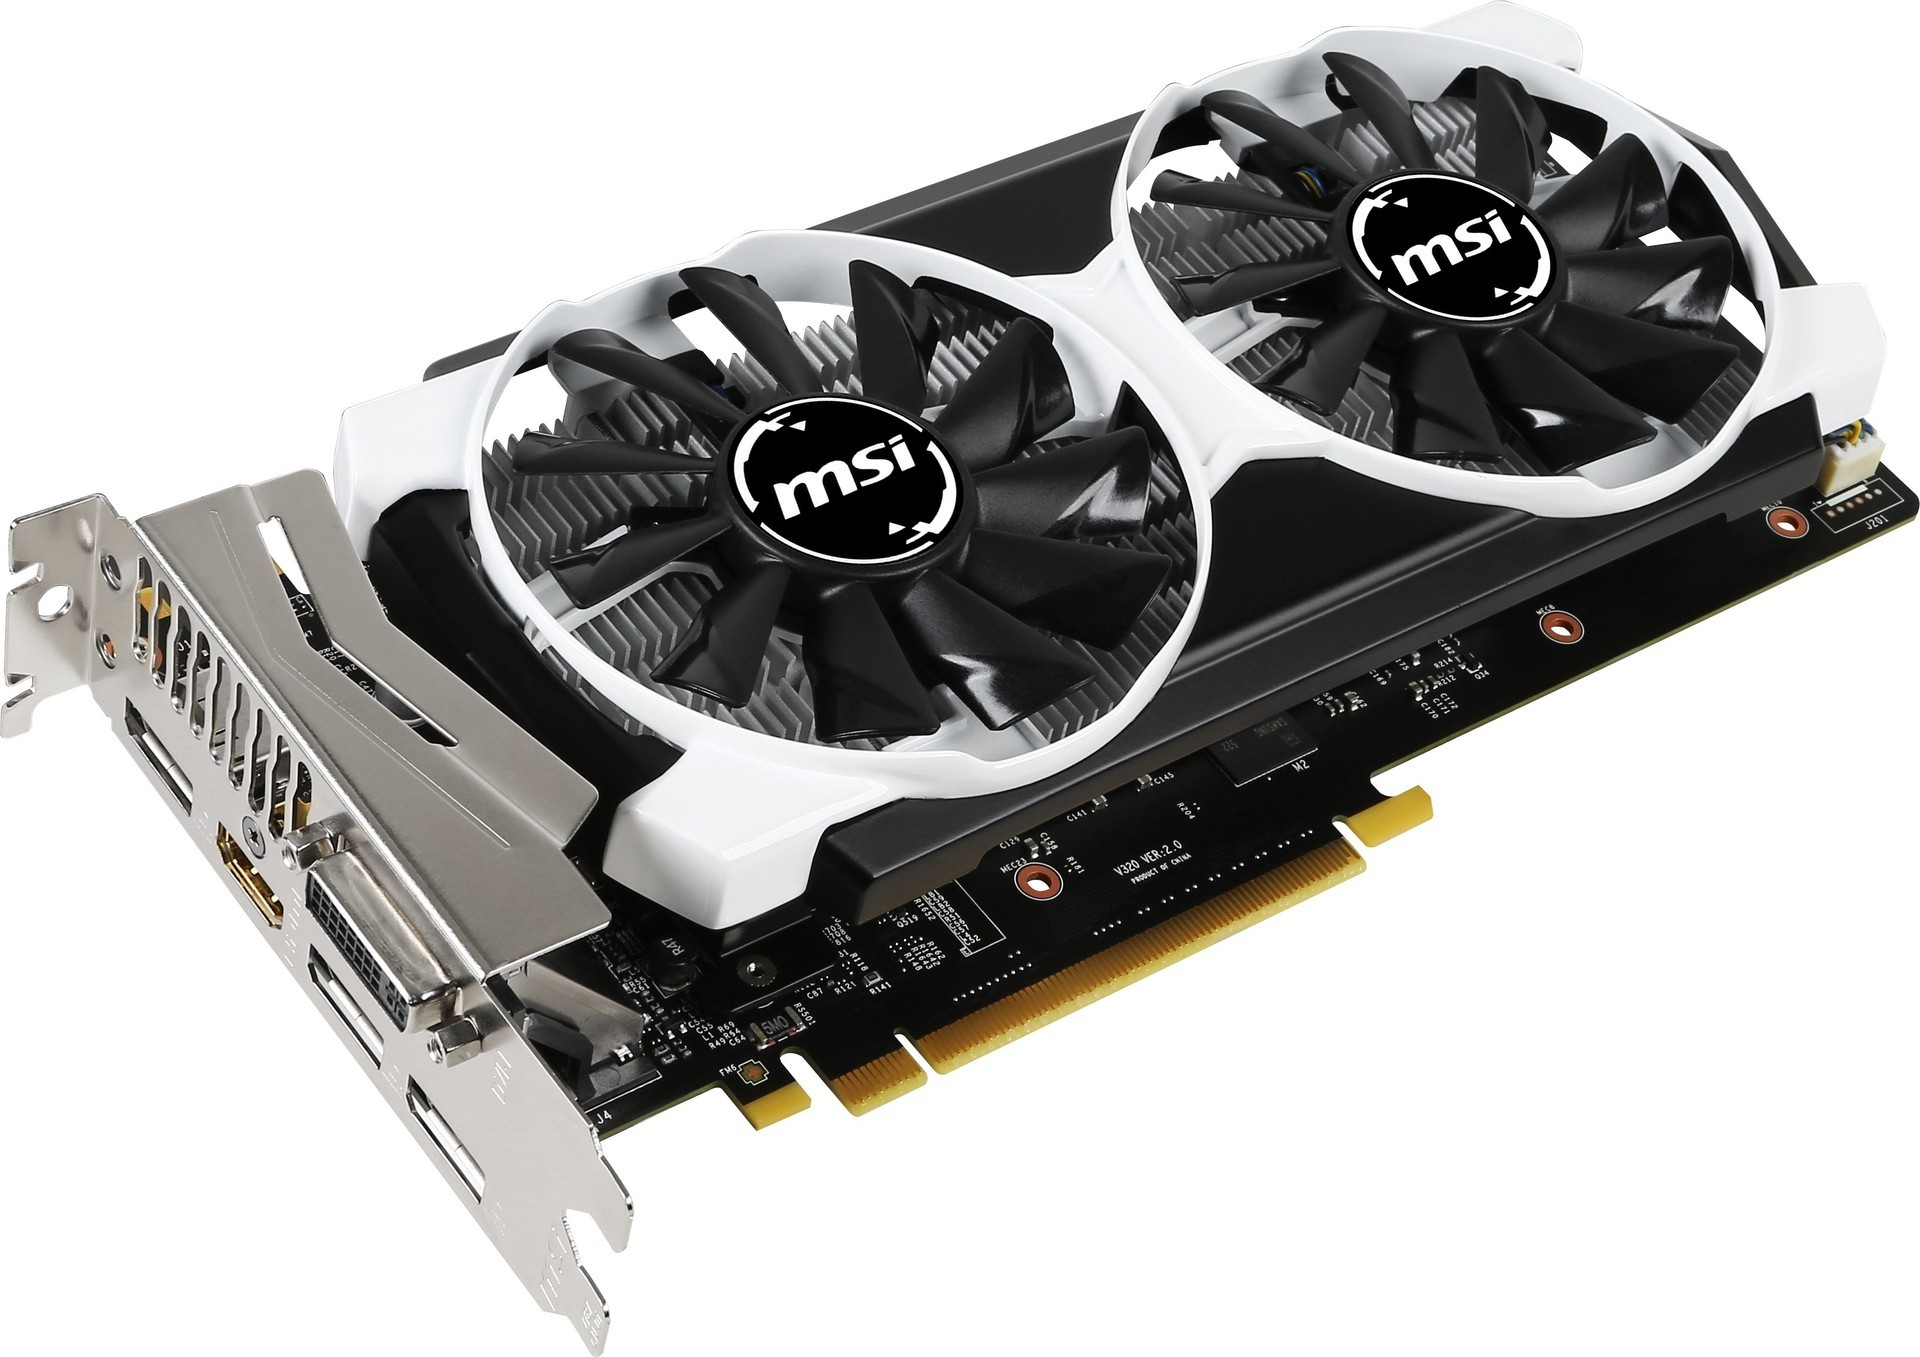 Msi Announces Three Gtx950 Variant Graphics Cards Custom Pc Review